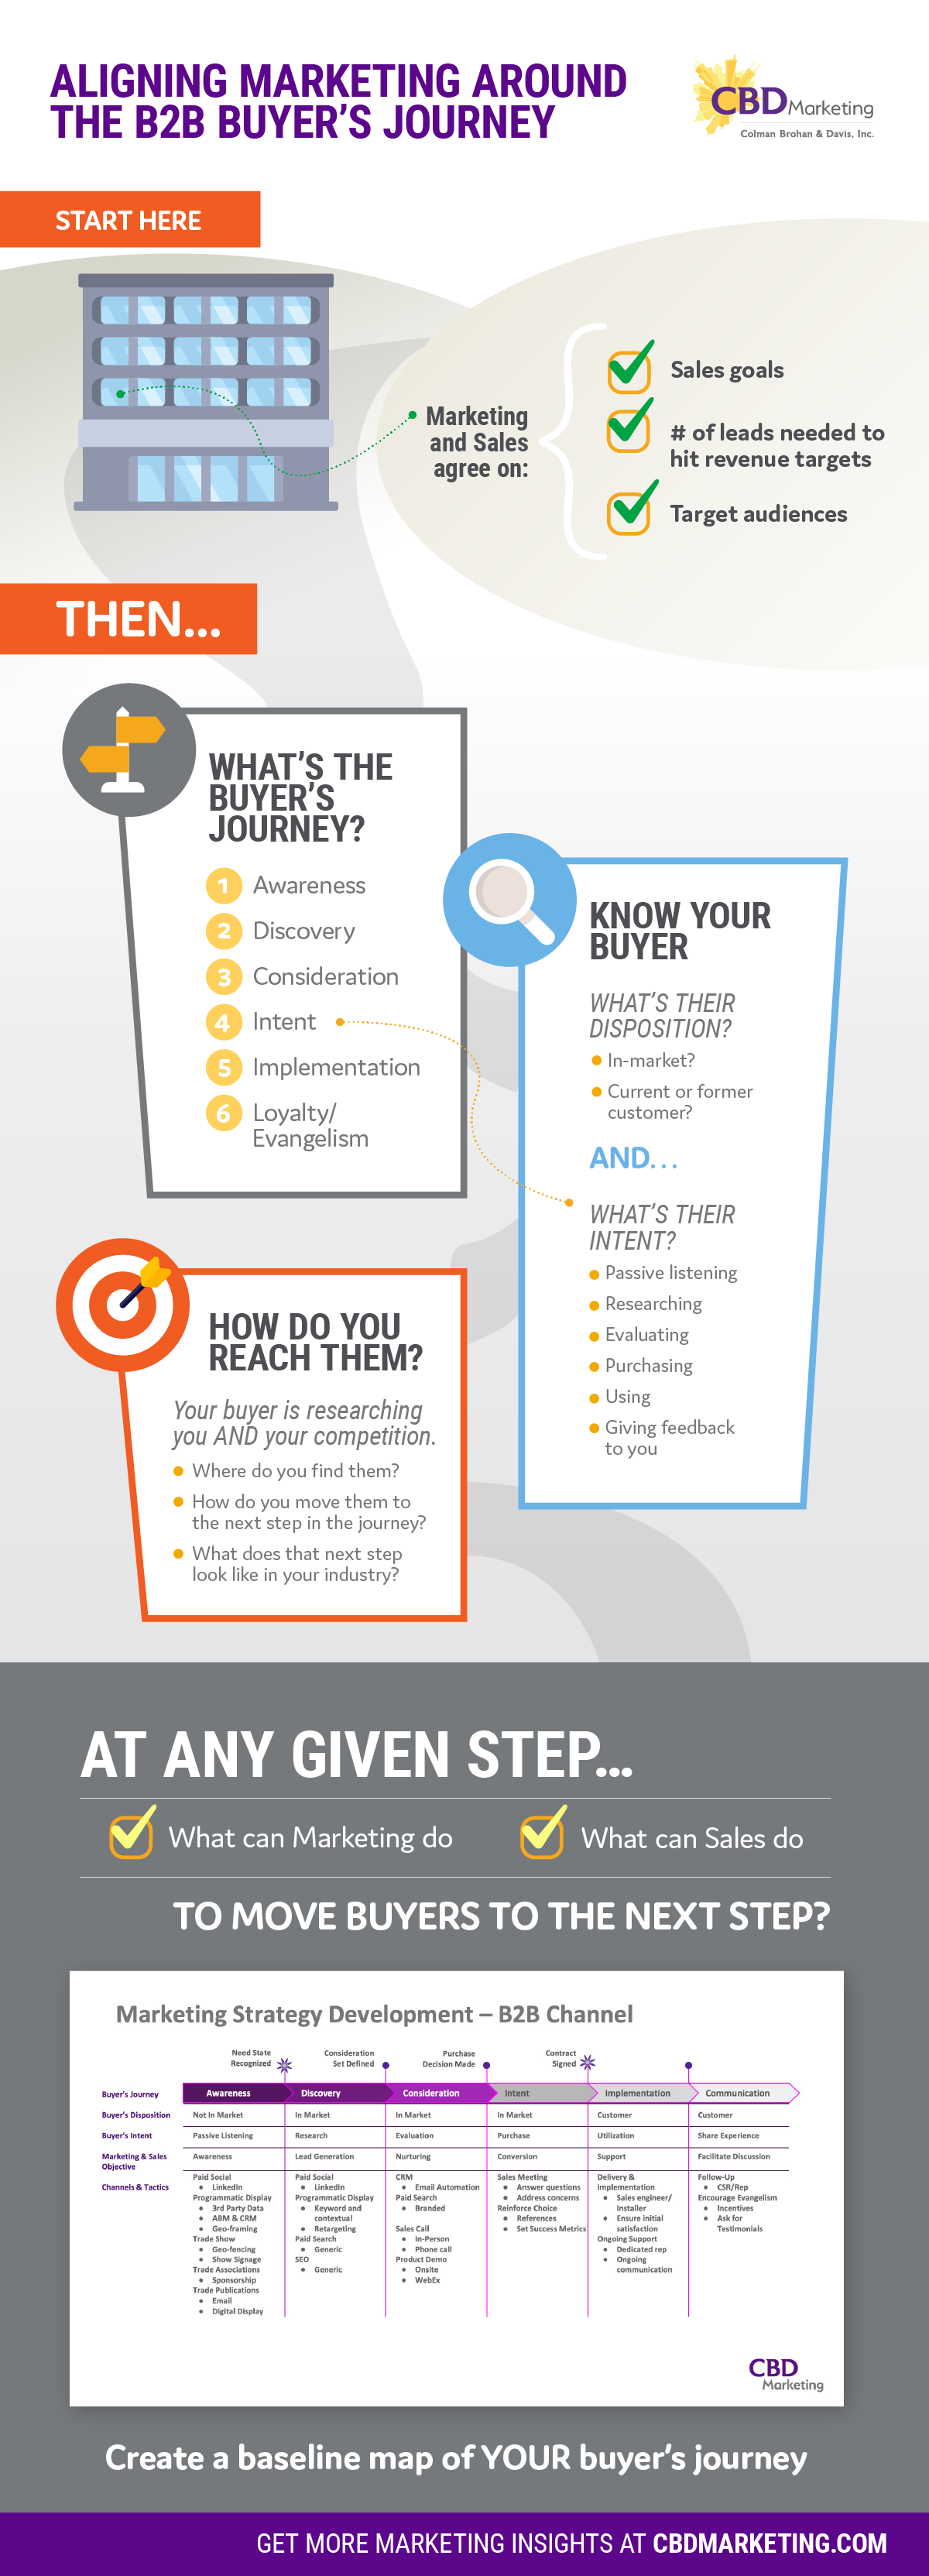 CBDMarketing_Buyers_Journey_Infographic_1200px